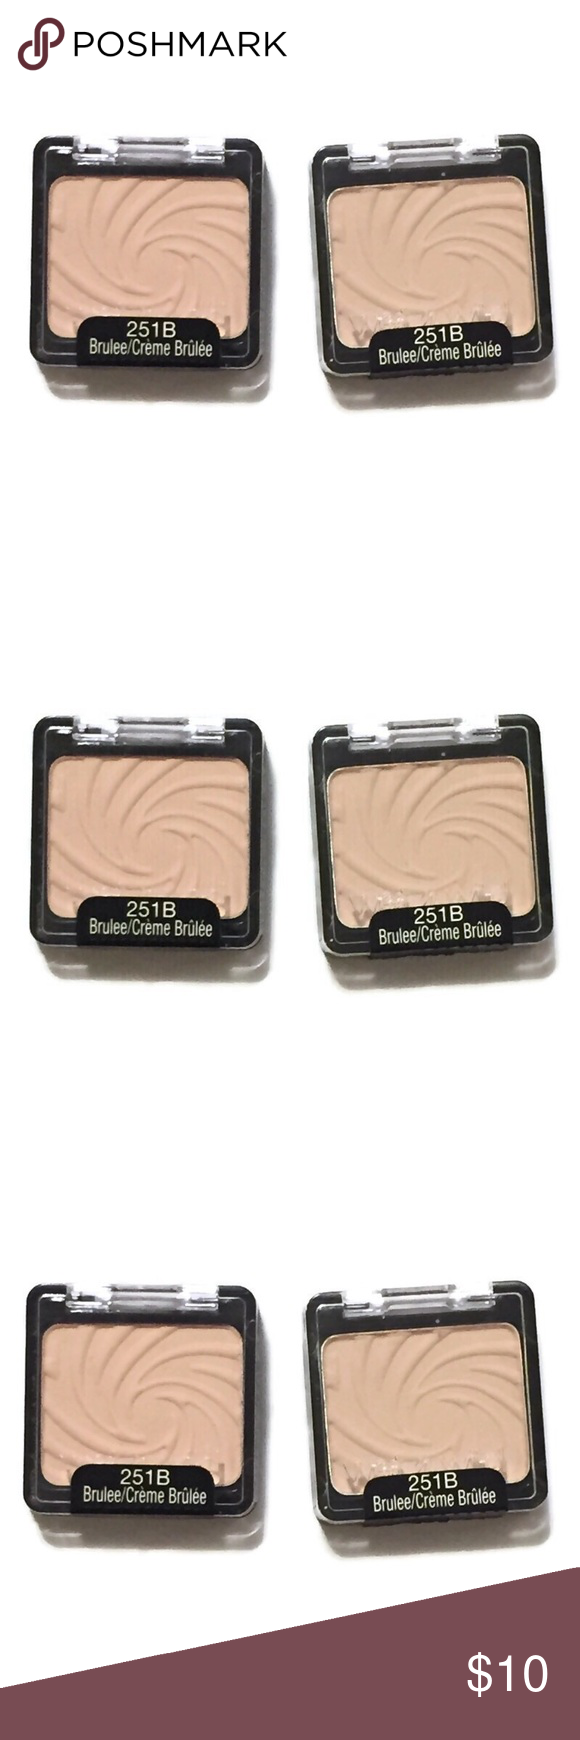 Sold Wet N Wild Color Icon Eye Shadow Creme Brûlée Wet N Wild Makeup Eyeshadow Creme